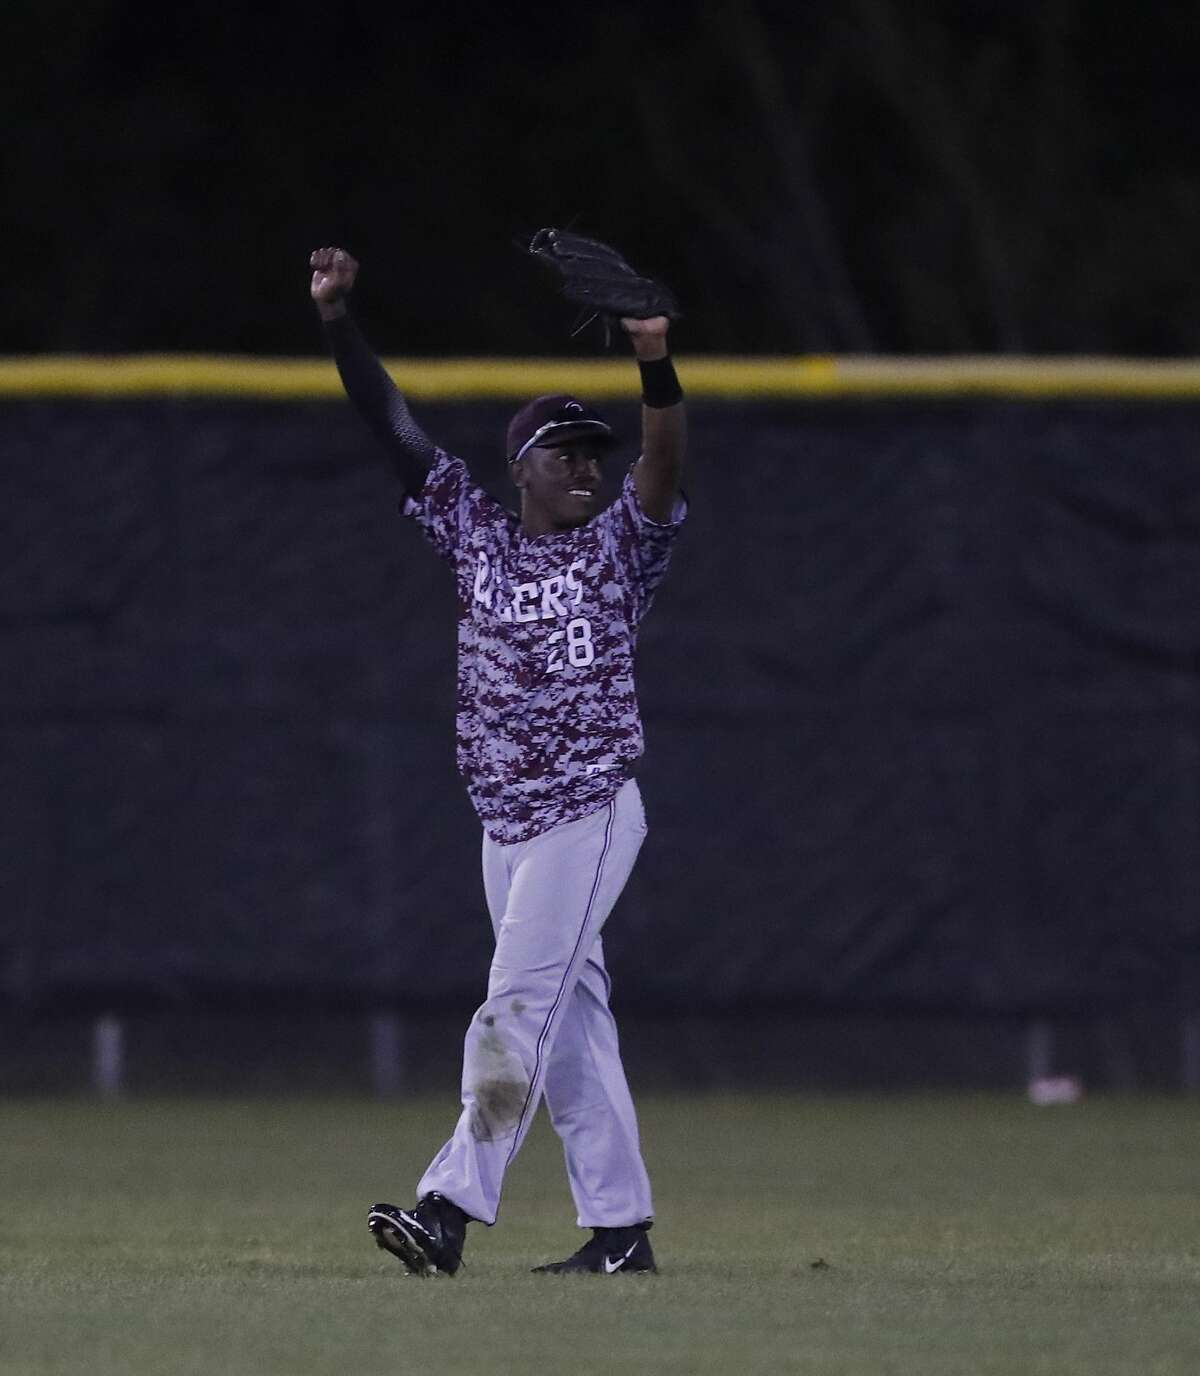 Pearland's AJ Knowles celebrates after catching George Ranch Joseph Menefee's pop out for the final out in the seventh inning of the Pearland-George Ranch High School baseball game at George Ranch, Friday, April 21, 2017, in Houston. ( Karen Warren / Houston Chronicle )